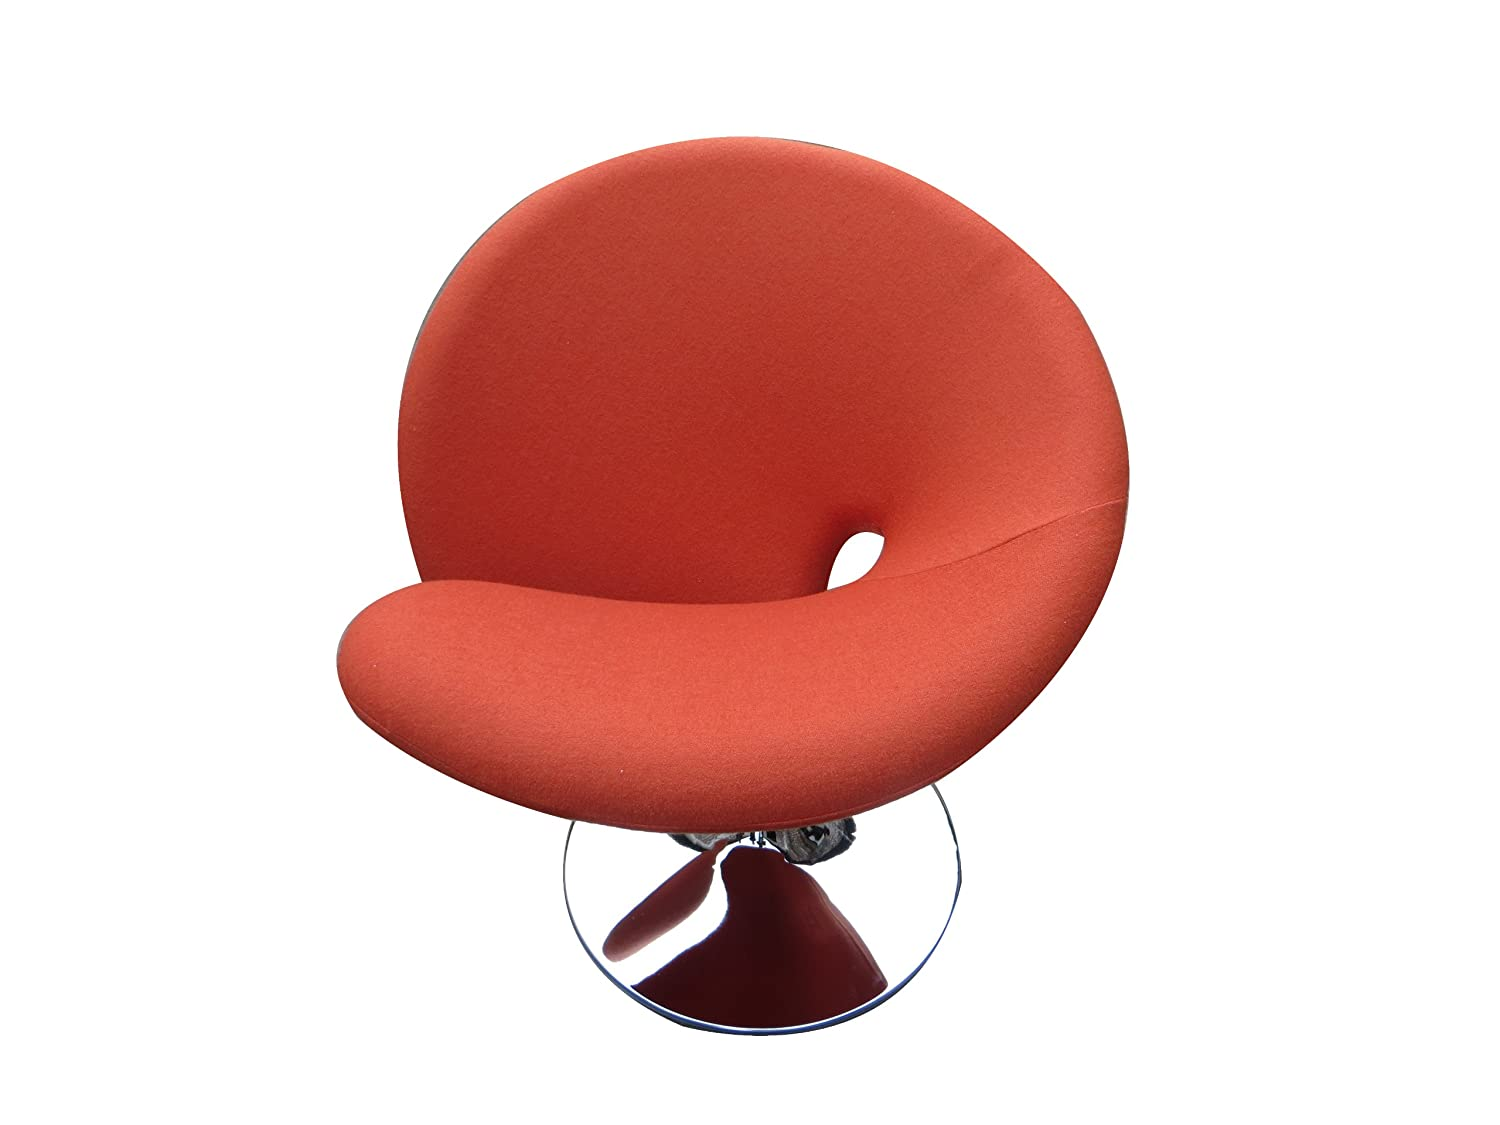 Fabulous International Design Usa Ziggy Swivel Leisure Chair Orange Interior Design Ideas Clesiryabchikinfo